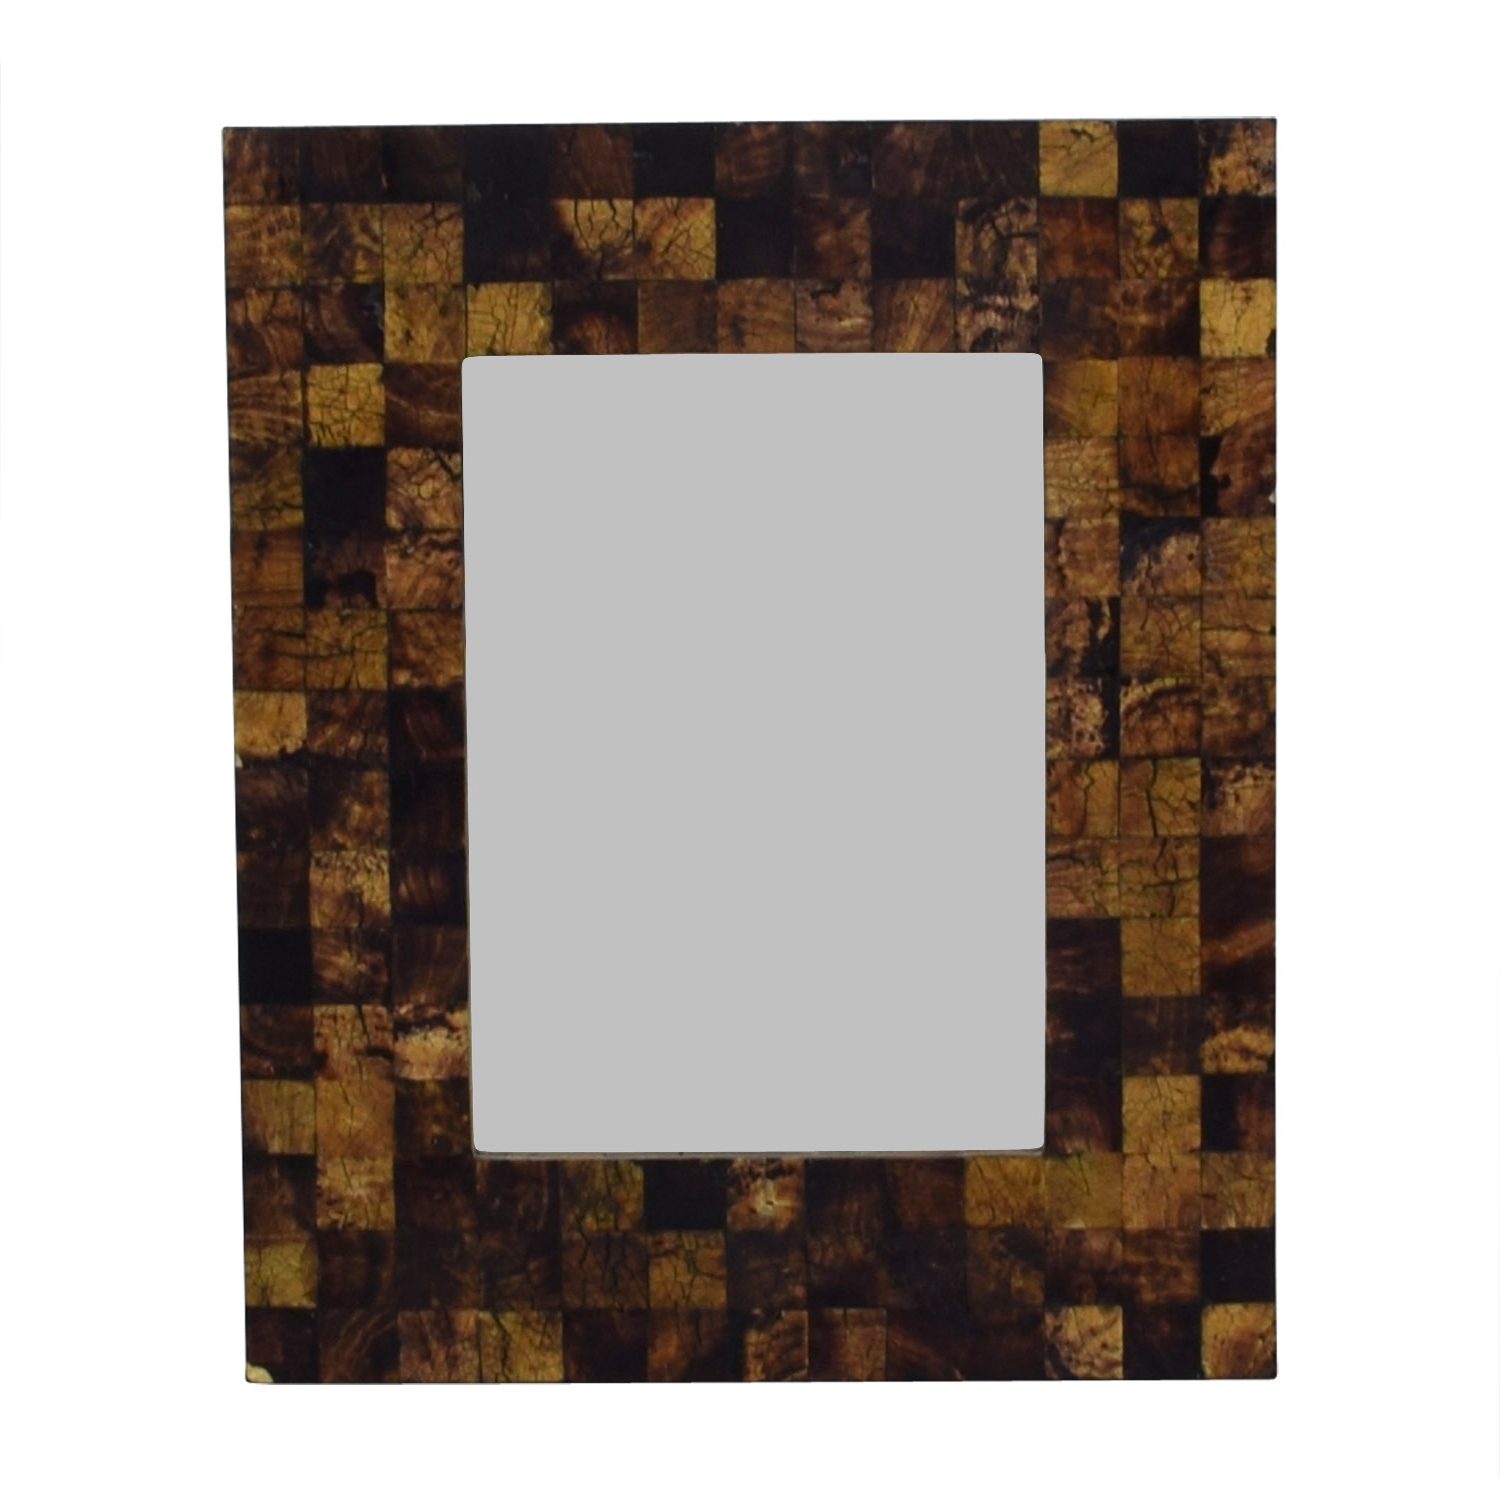 [%75% Off – Pottery Barn Pottery Barn Crackled Wood Framed Wall Mirror / Decor Within Preferred Pottery Barn Wall Mirrors|pottery Barn Wall Mirrors Within Fashionable 75% Off – Pottery Barn Pottery Barn Crackled Wood Framed Wall Mirror / Decor|famous Pottery Barn Wall Mirrors Inside 75% Off – Pottery Barn Pottery Barn Crackled Wood Framed Wall Mirror / Decor|best And Newest 75% Off – Pottery Barn Pottery Barn Crackled Wood Framed Wall Mirror / Decor In Pottery Barn Wall Mirrors%] (View 12 of 20)